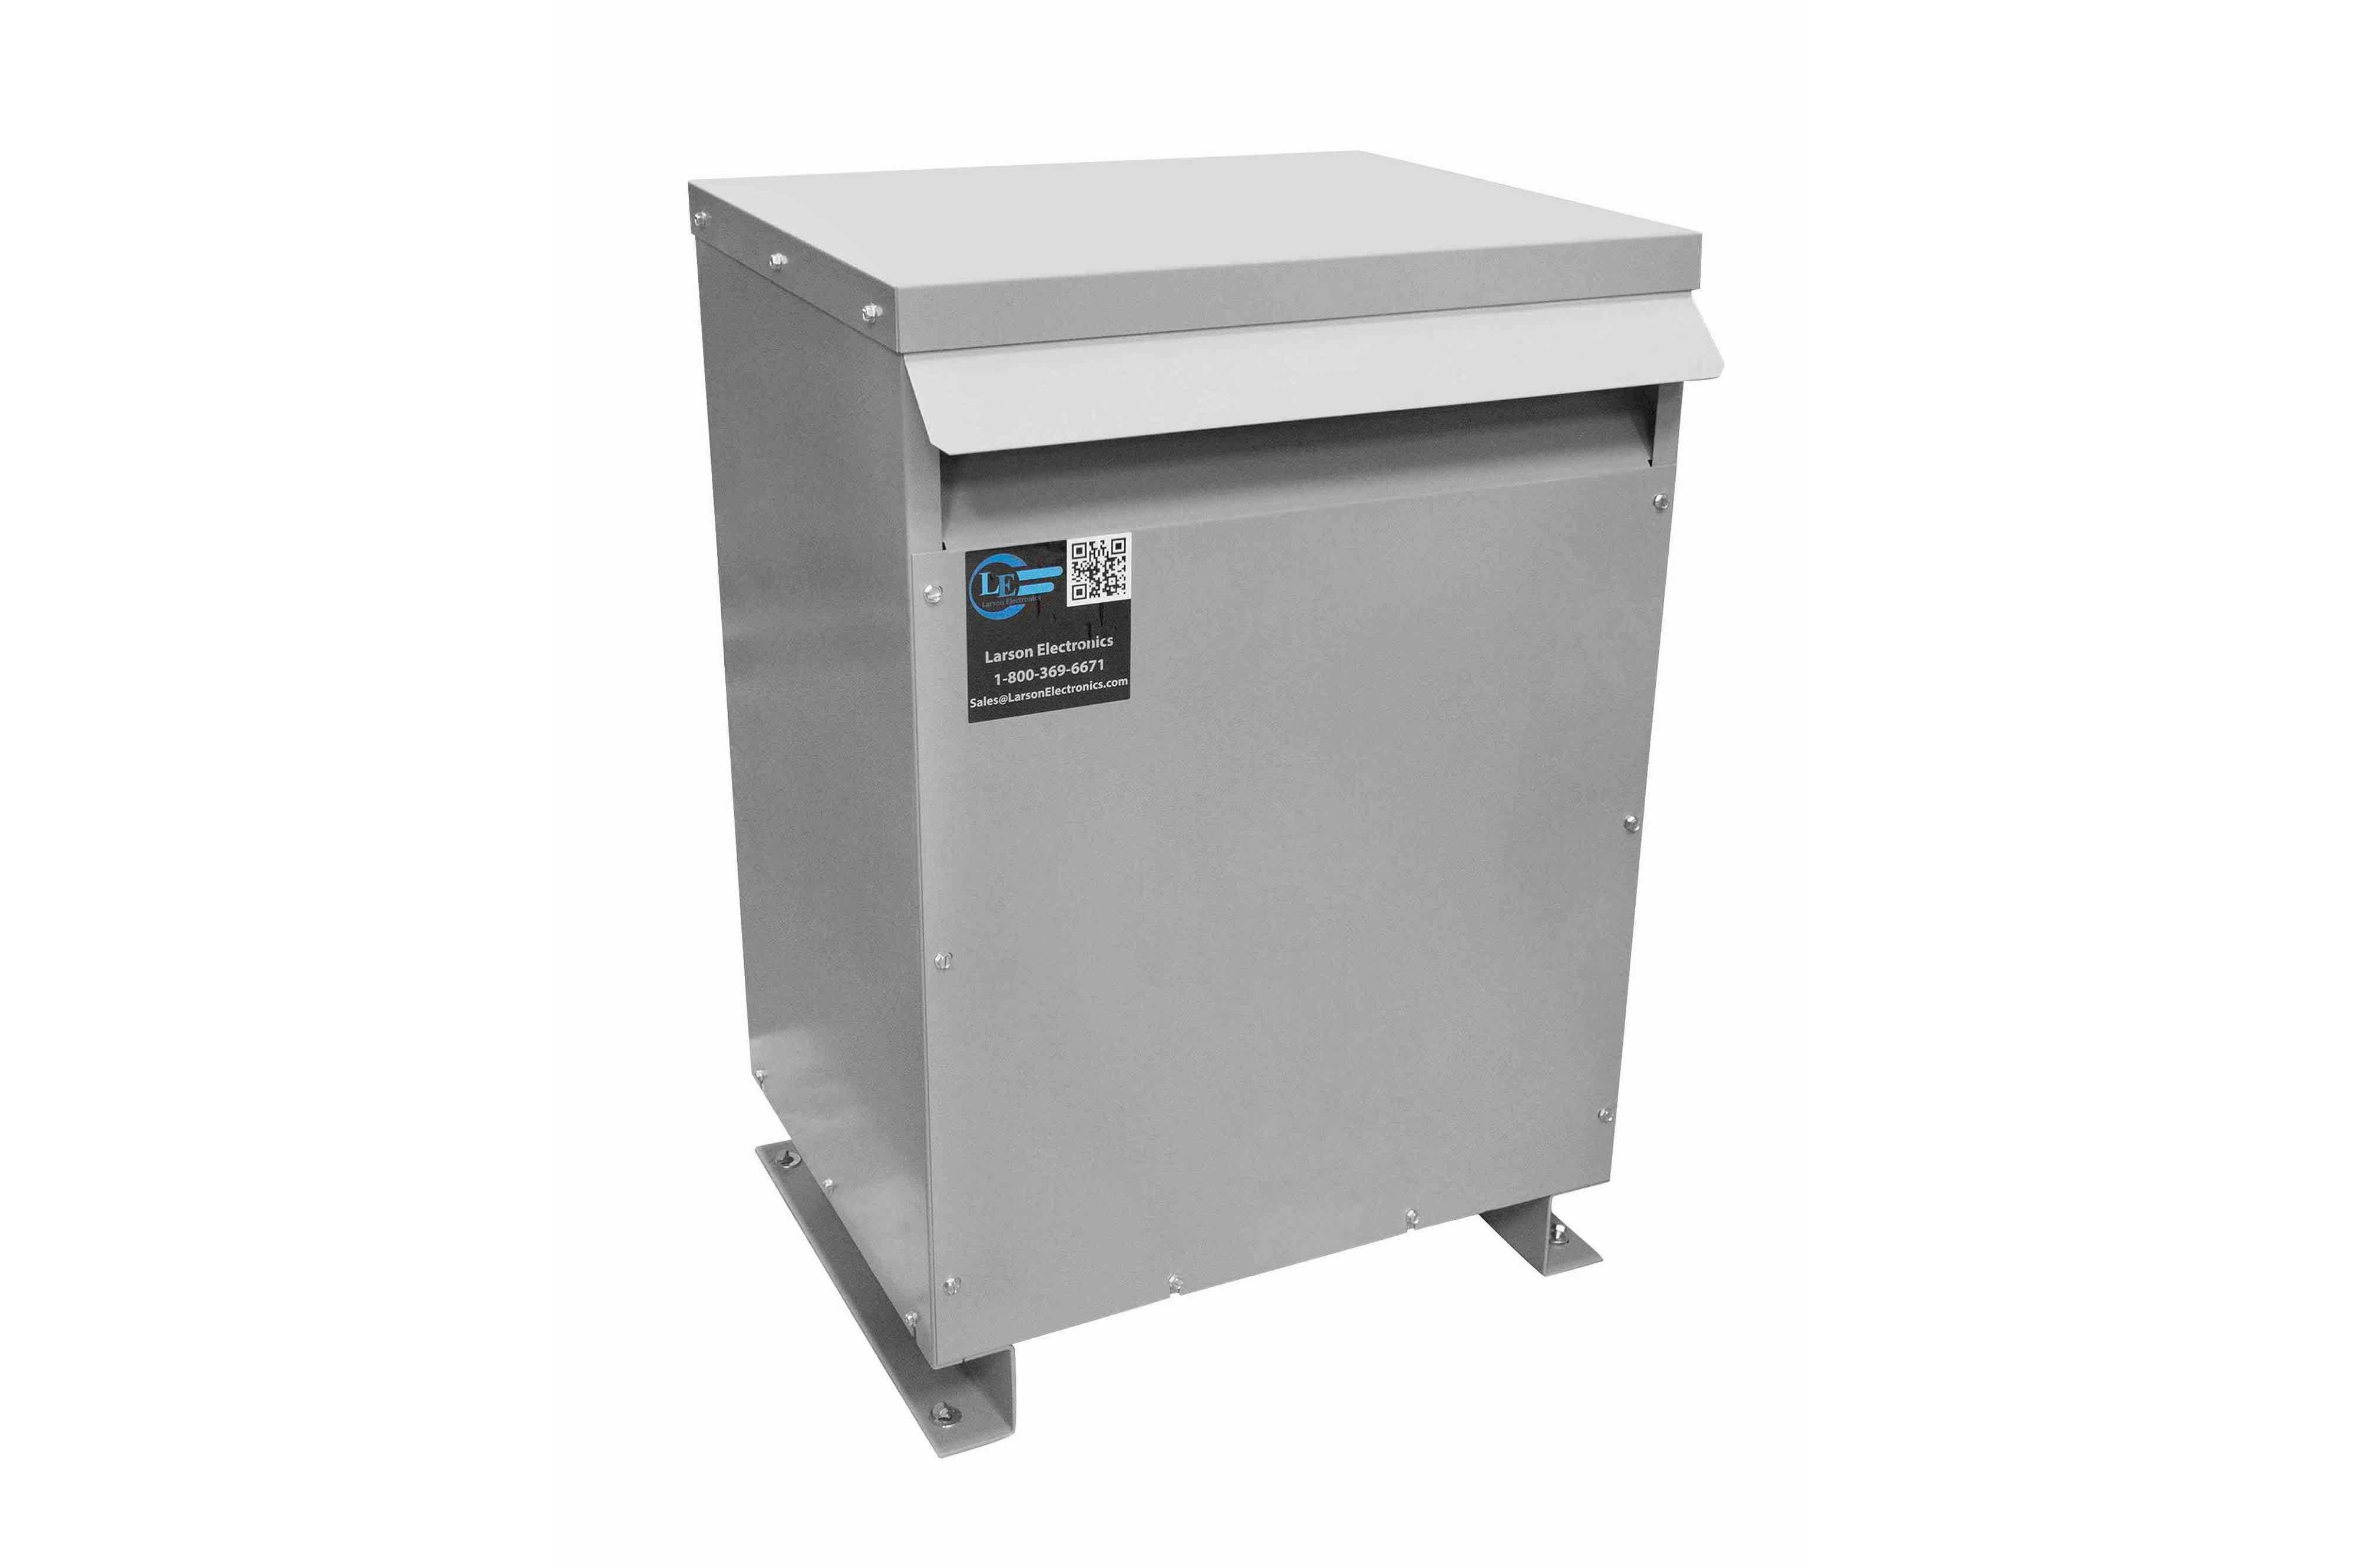 20 kVA 3PH DOE Transformer, 575V Delta Primary, 208Y/120 Wye-N Secondary, N3R, Ventilated, 60 Hz